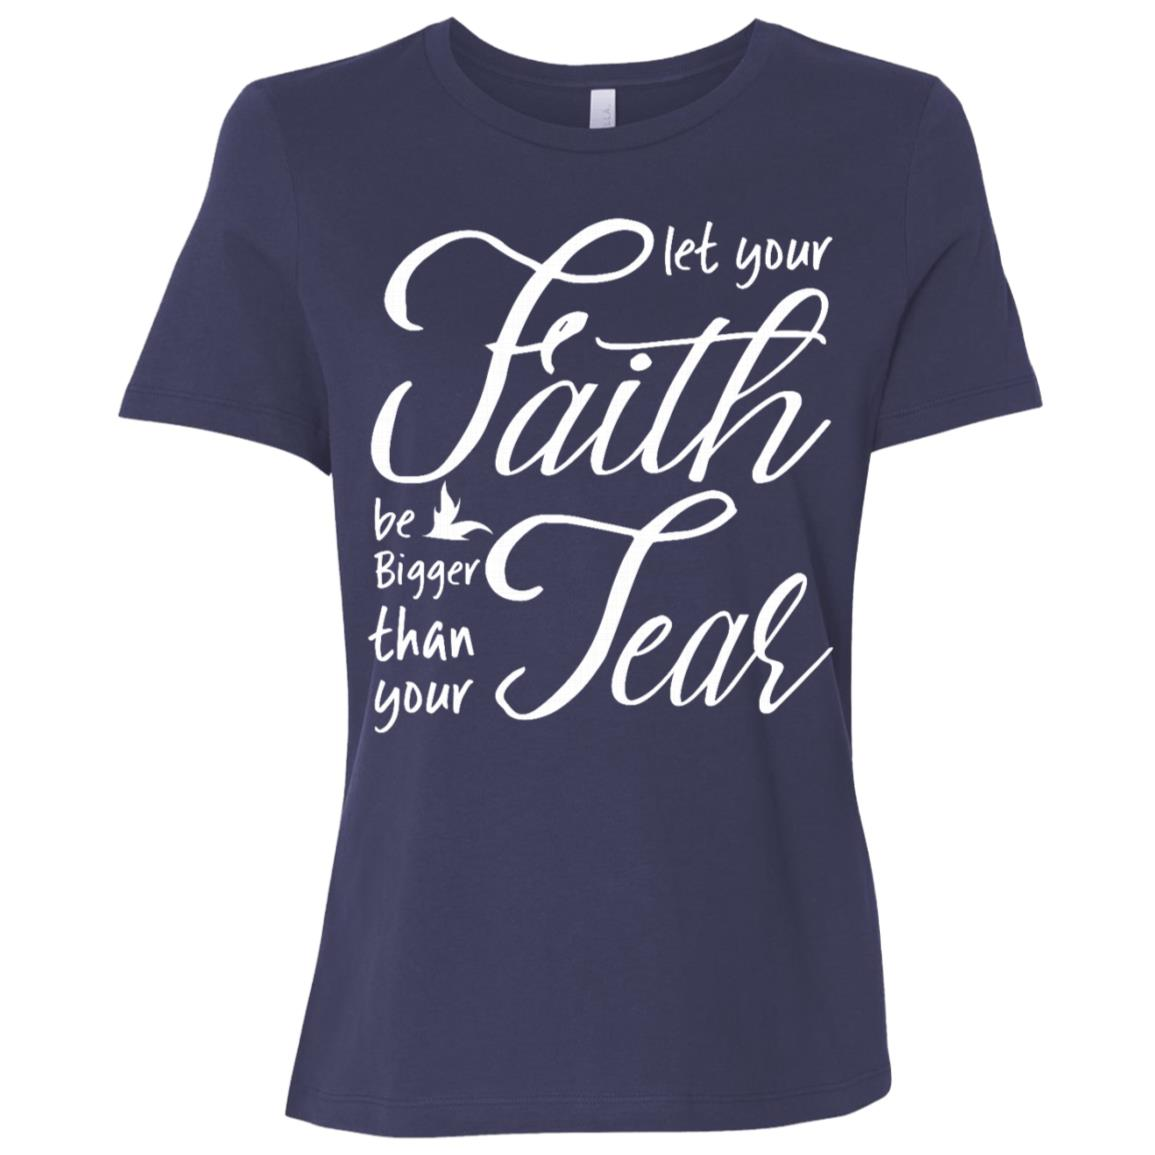 Let your faith be bigger than you fear Women Short Sleeve T-Shirt